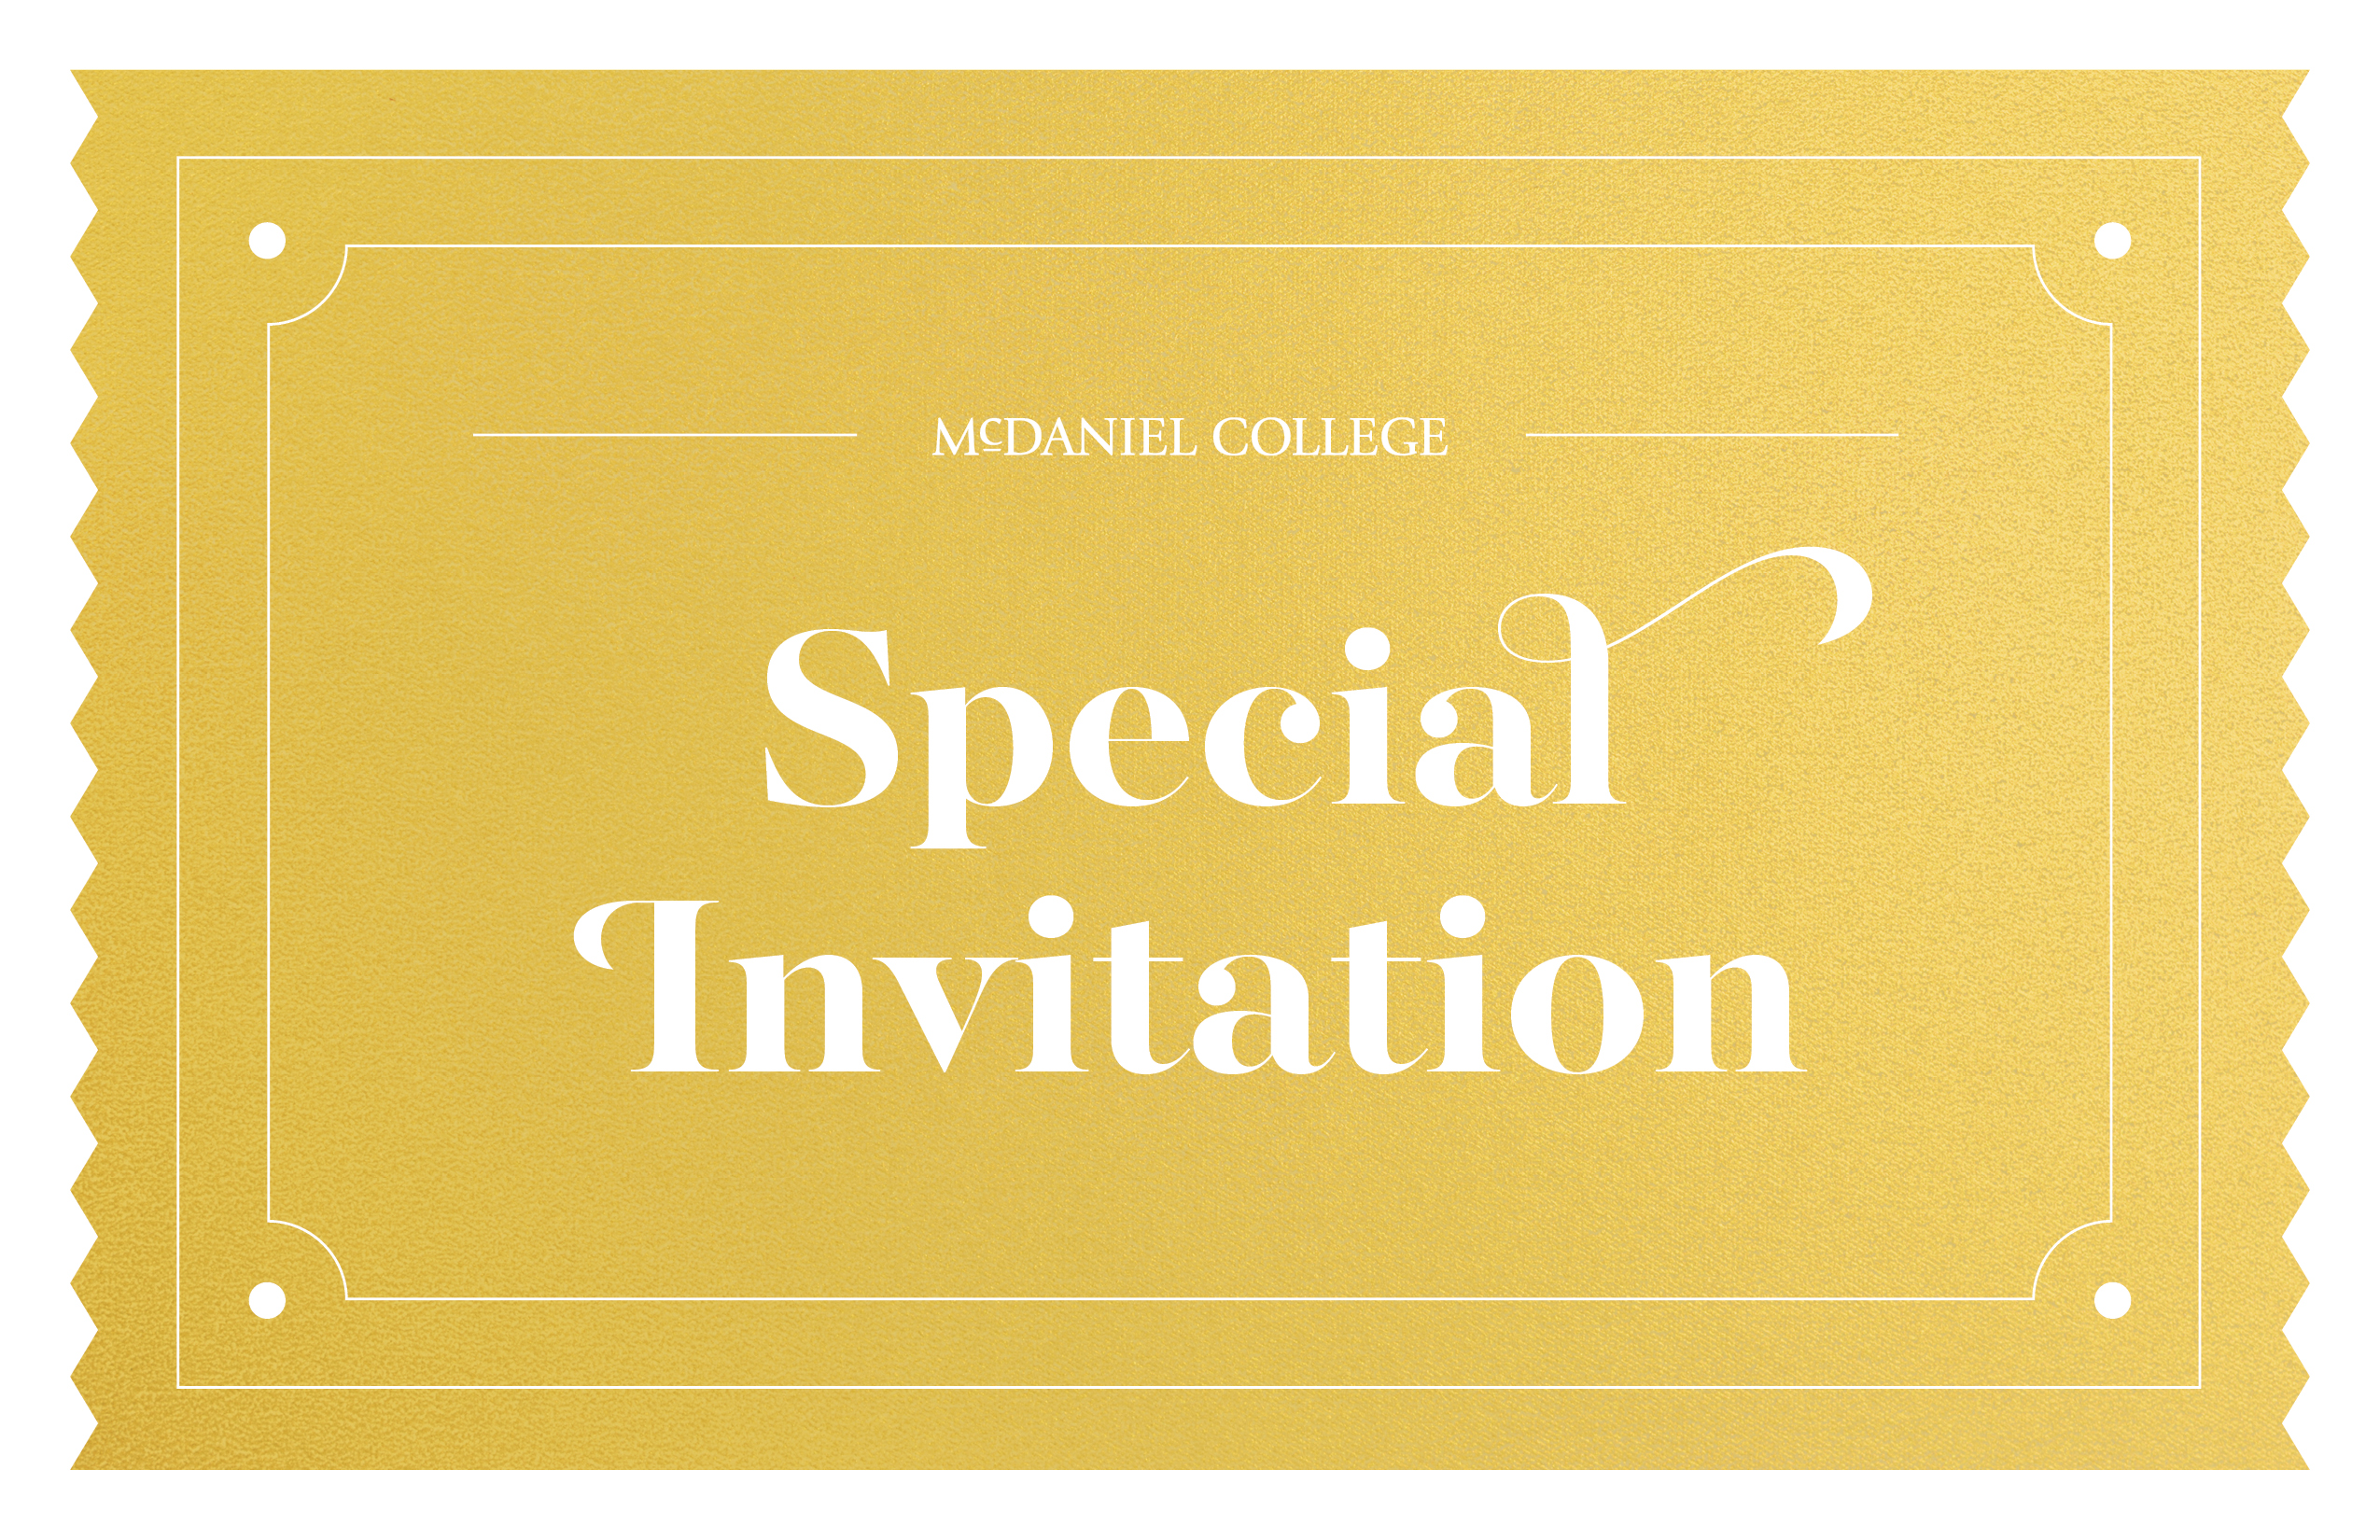 A Special Invitation from McDaniel College